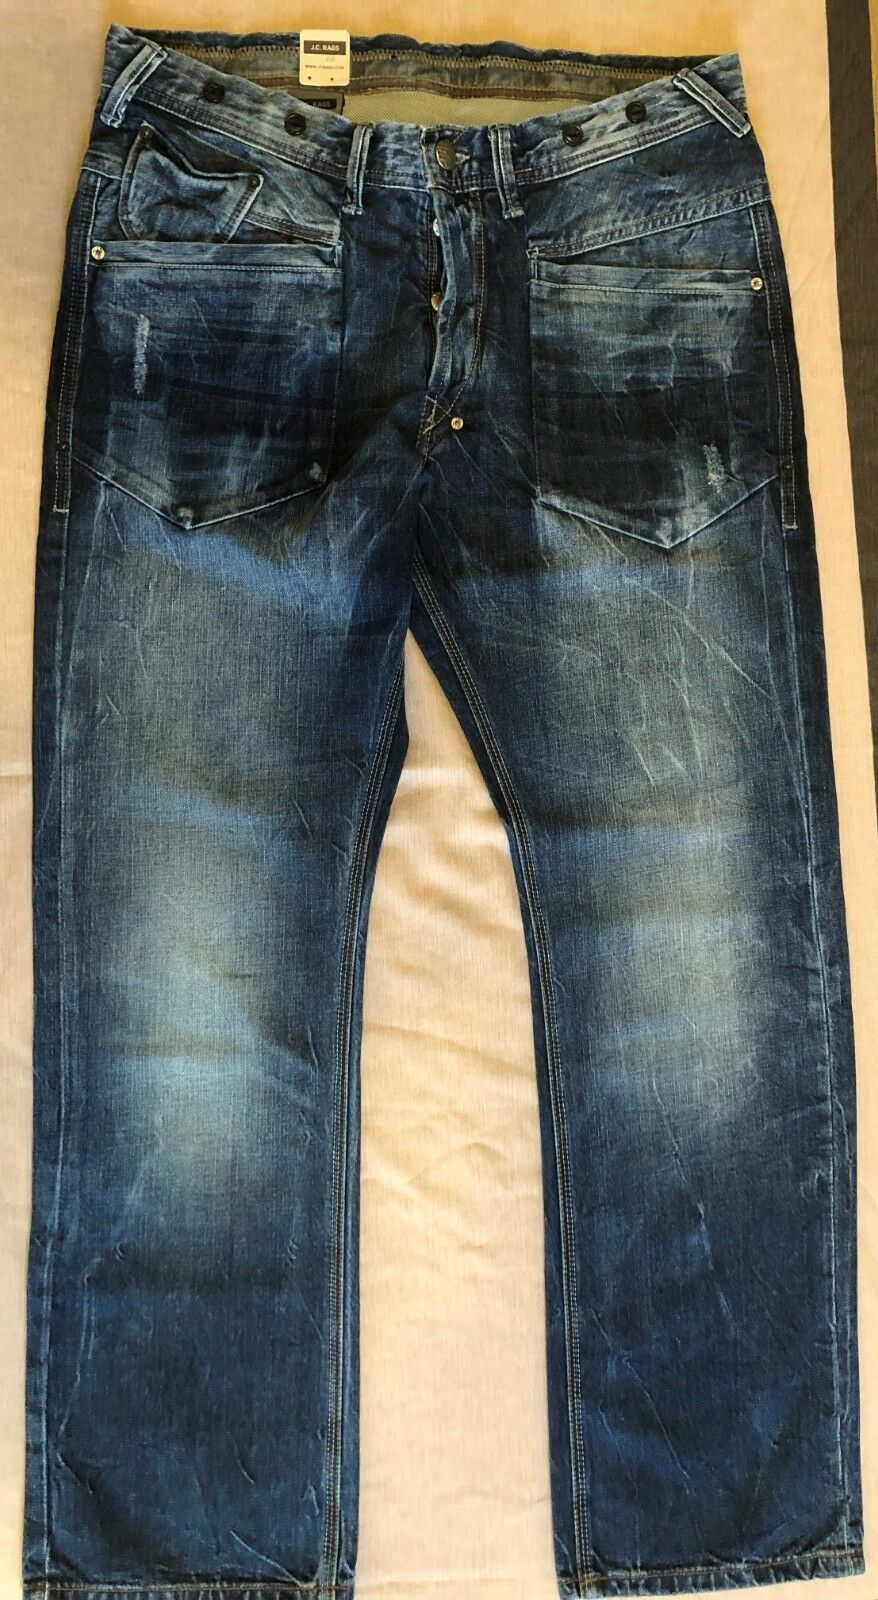 J.C.RAGS - Men's bluee - Whiskered - Relaxed Straight Jeans - W33  - BNWT